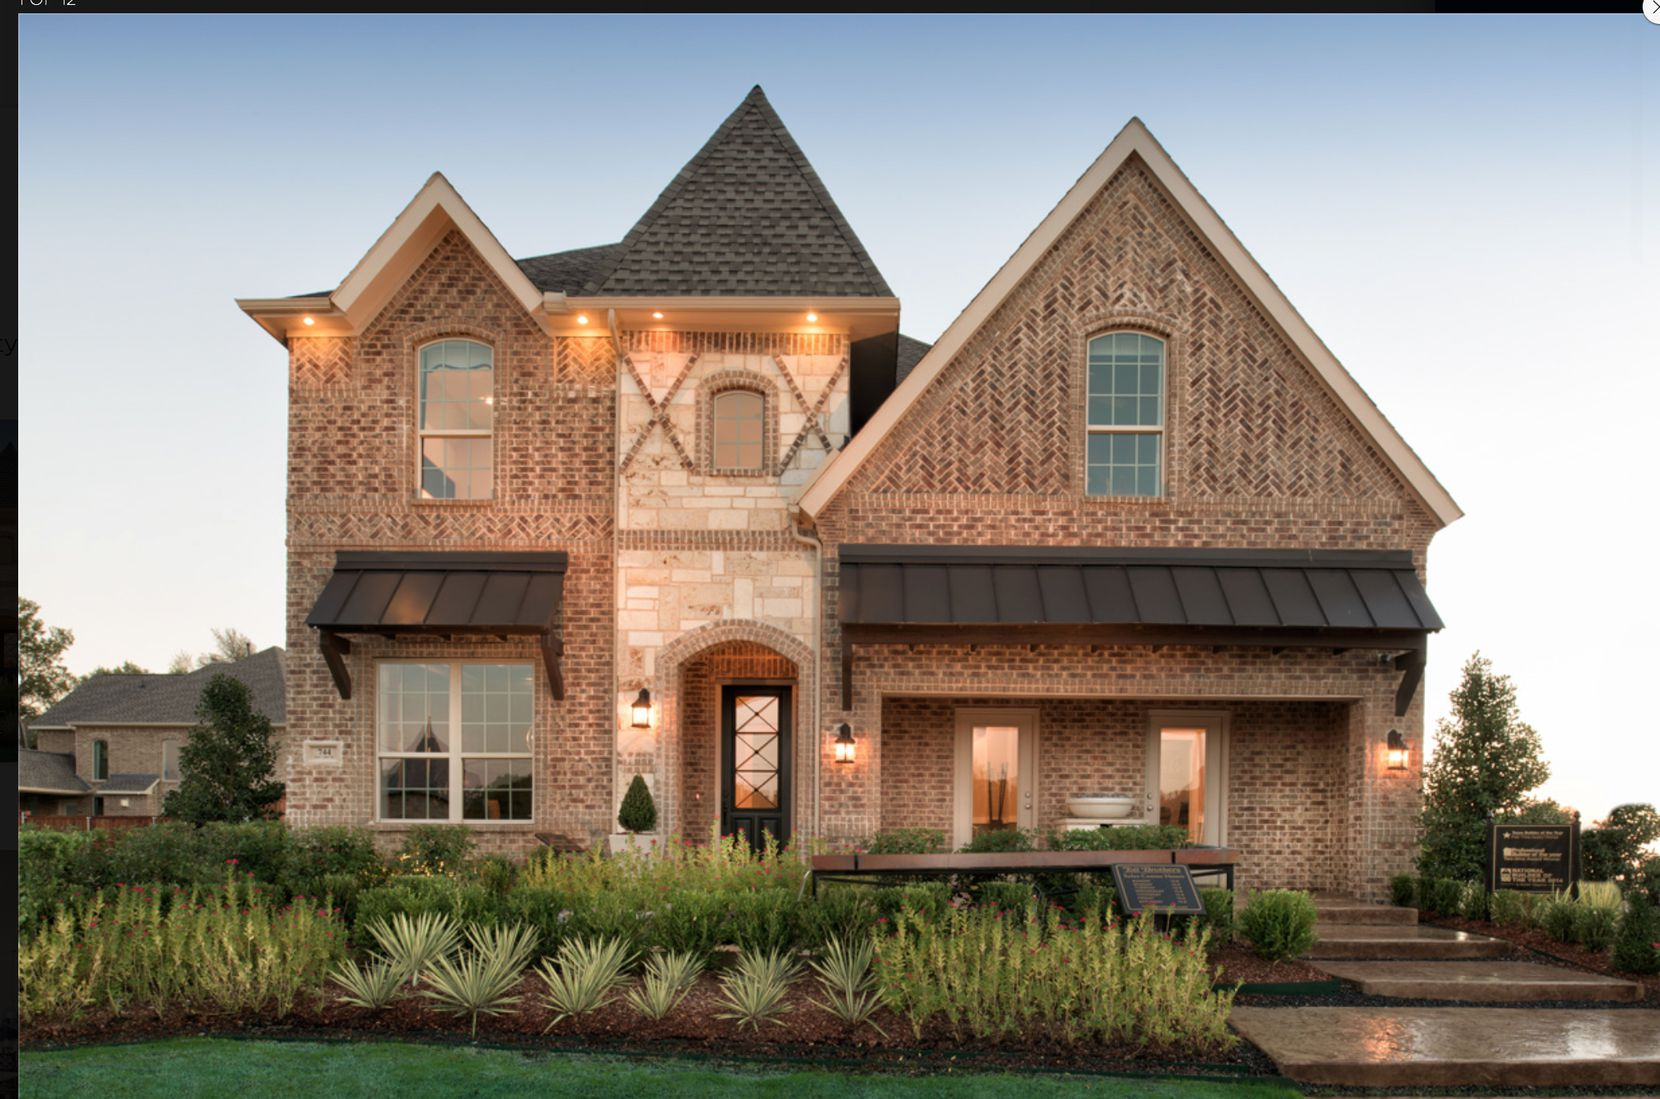 """Toll Brothers builds more than 300 luxury single-family homes a year in North Texas, including this $750,000 """"country manor"""" house in Coppell."""